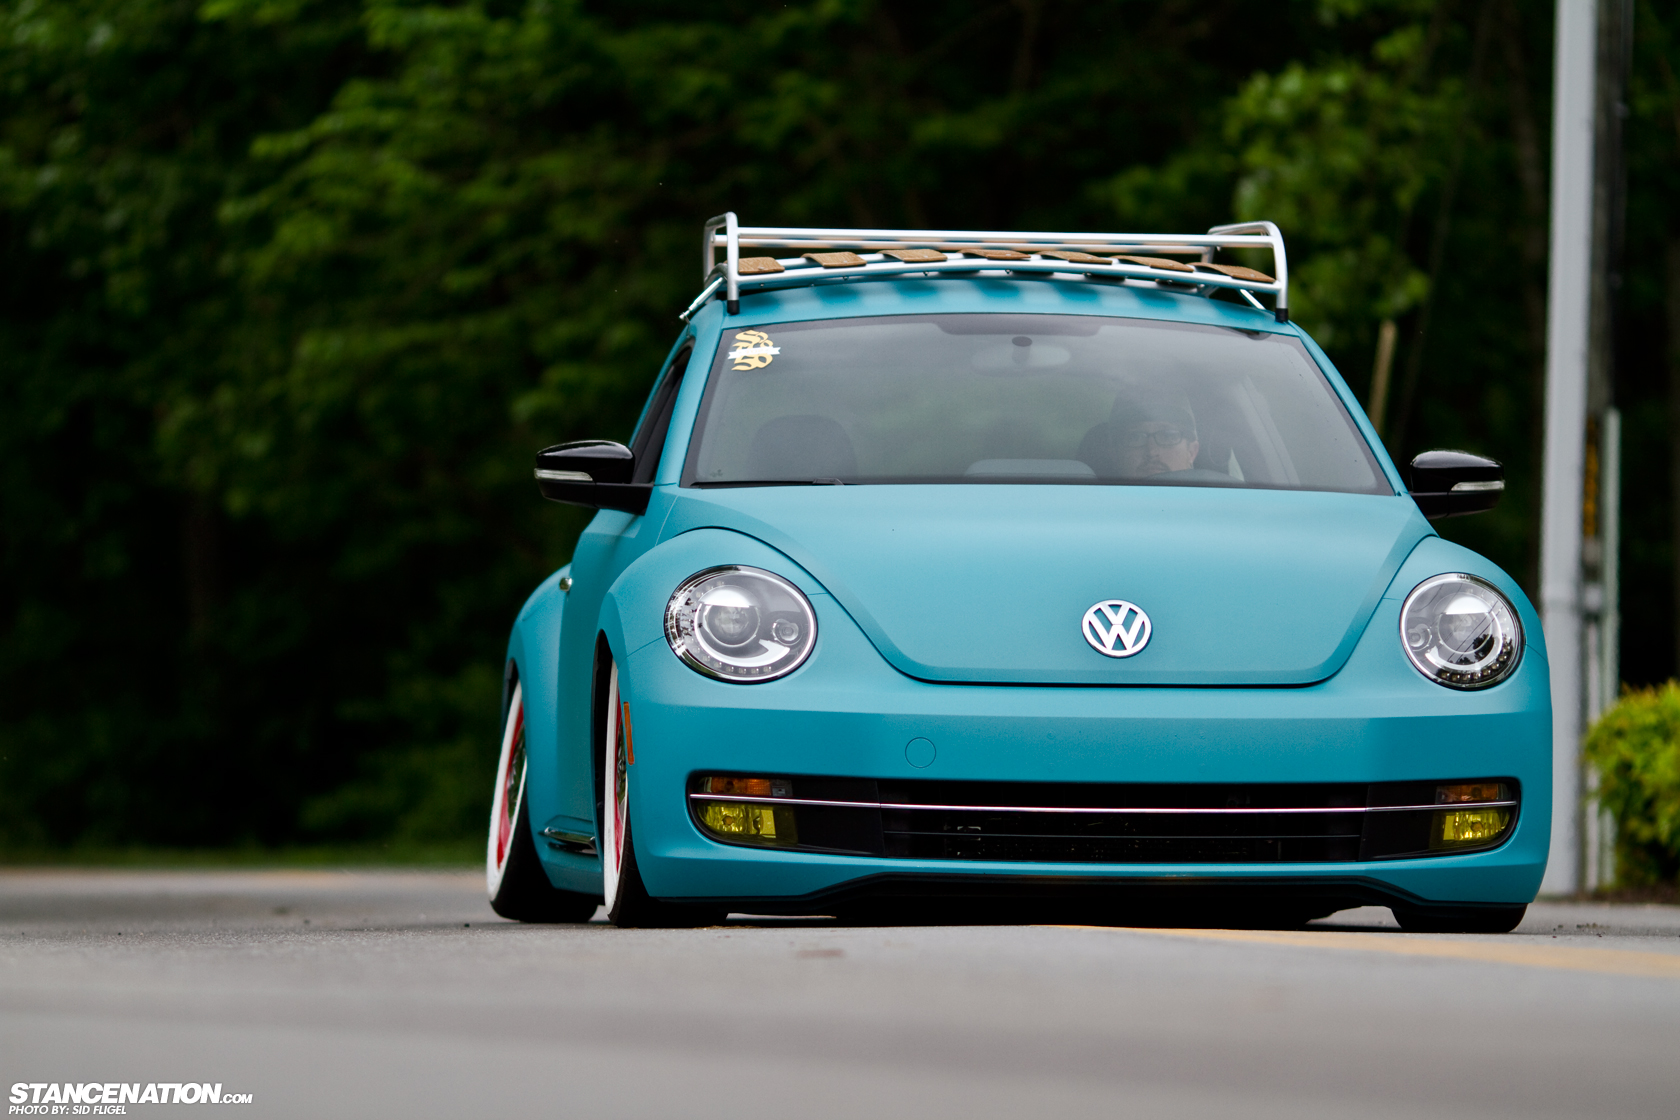 Vw new beetle tuning pictures and photos - Img_4635